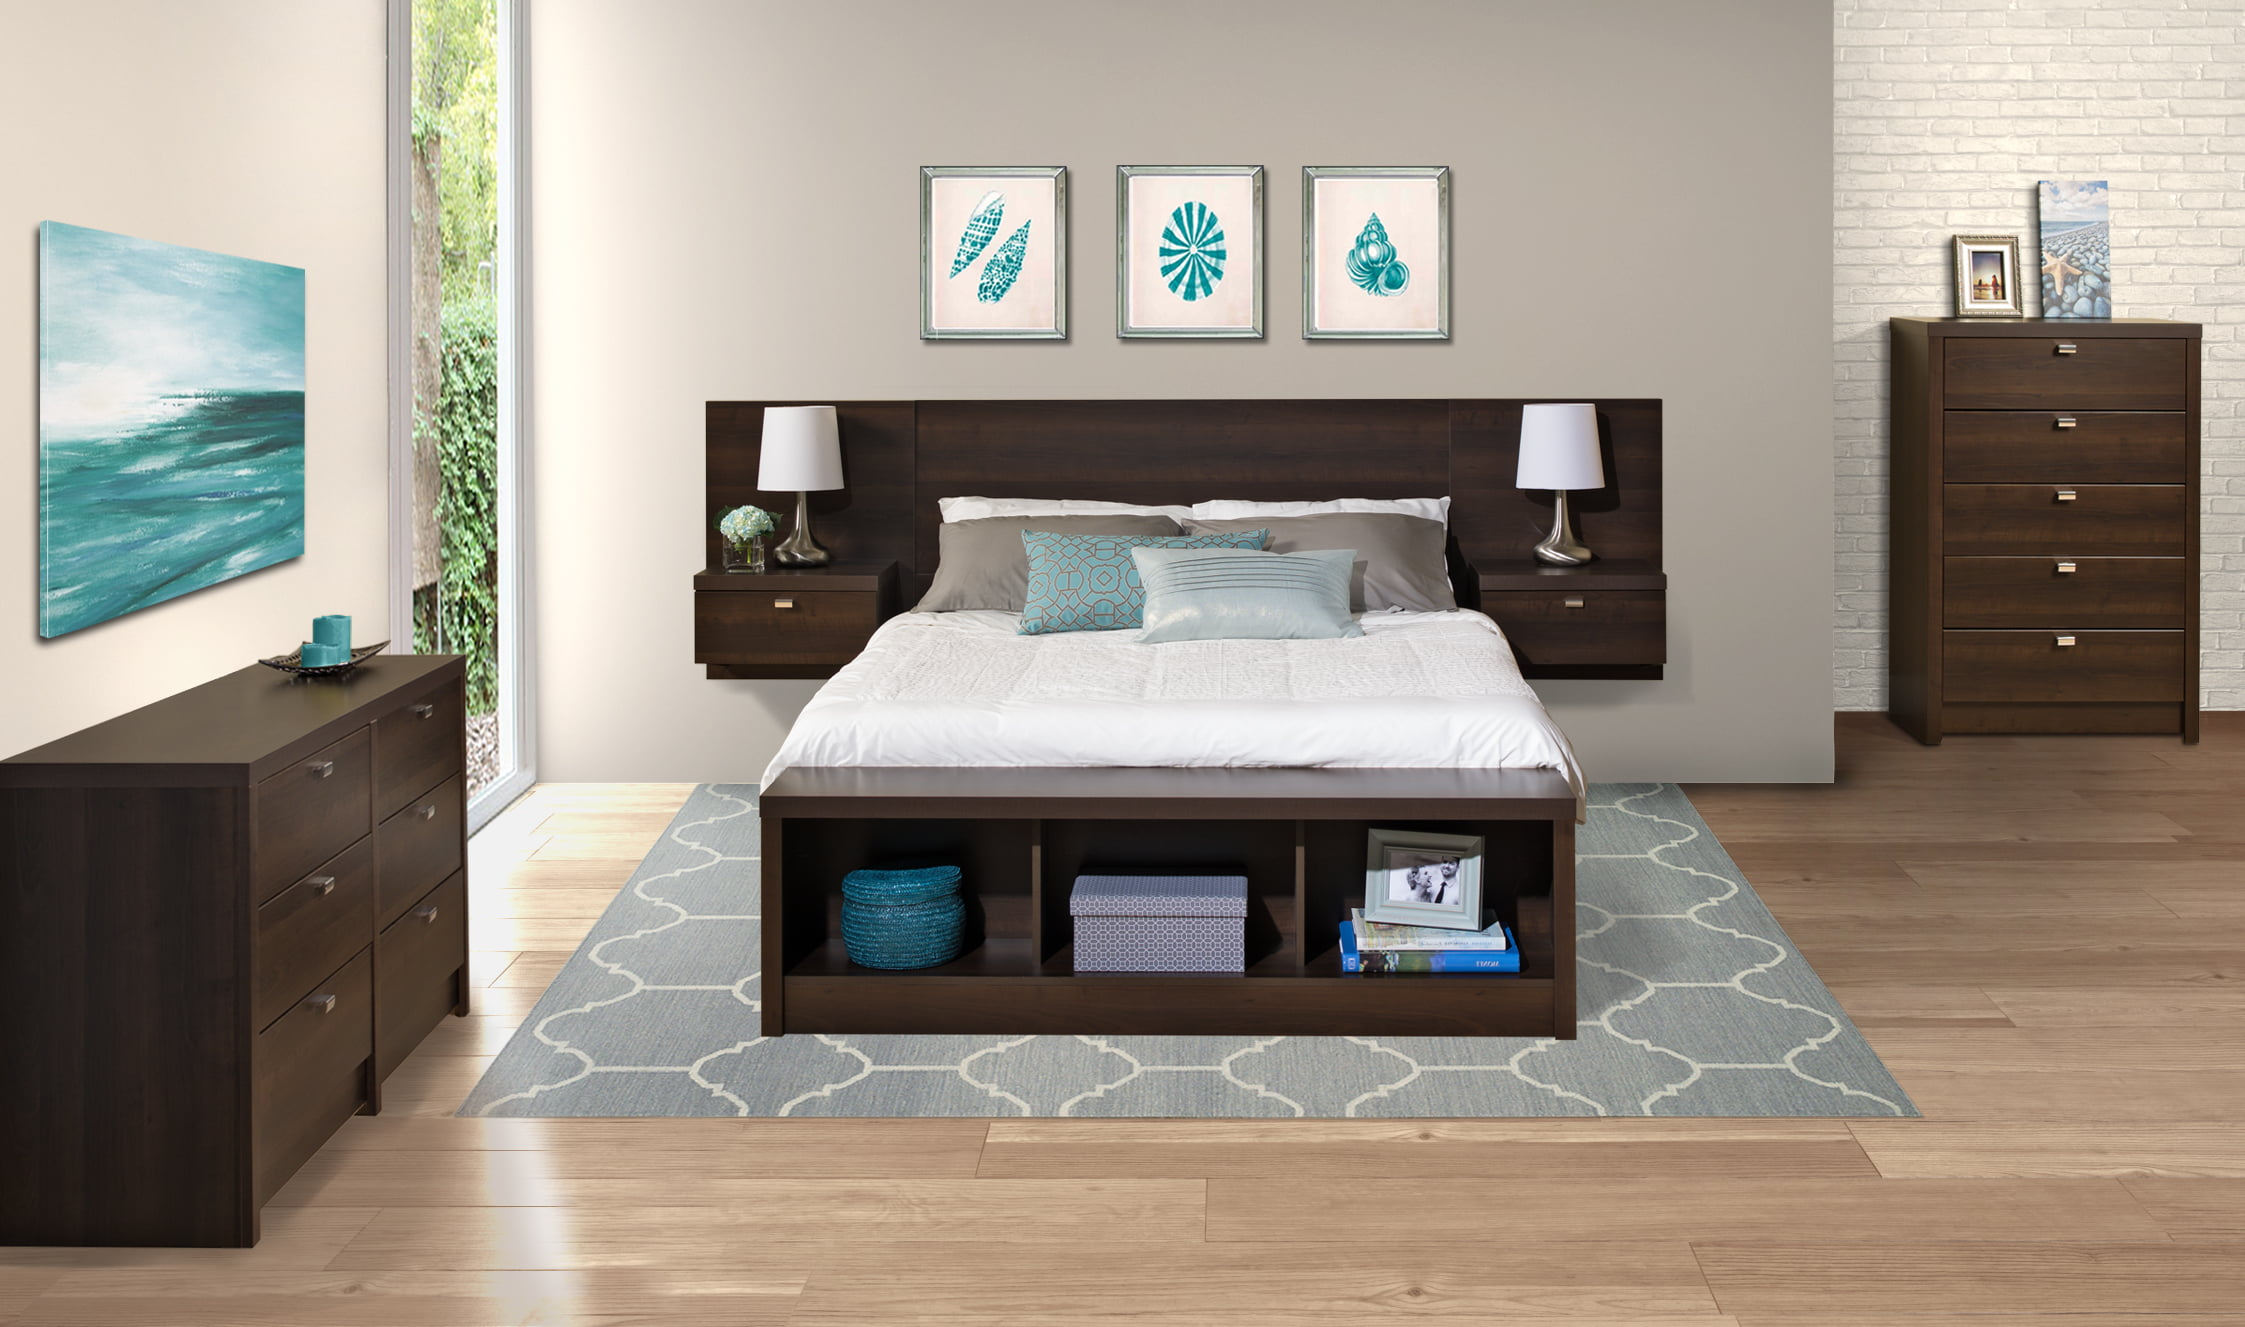 attached to saving space extra shelves floating an headboard wide combo nightstand pin